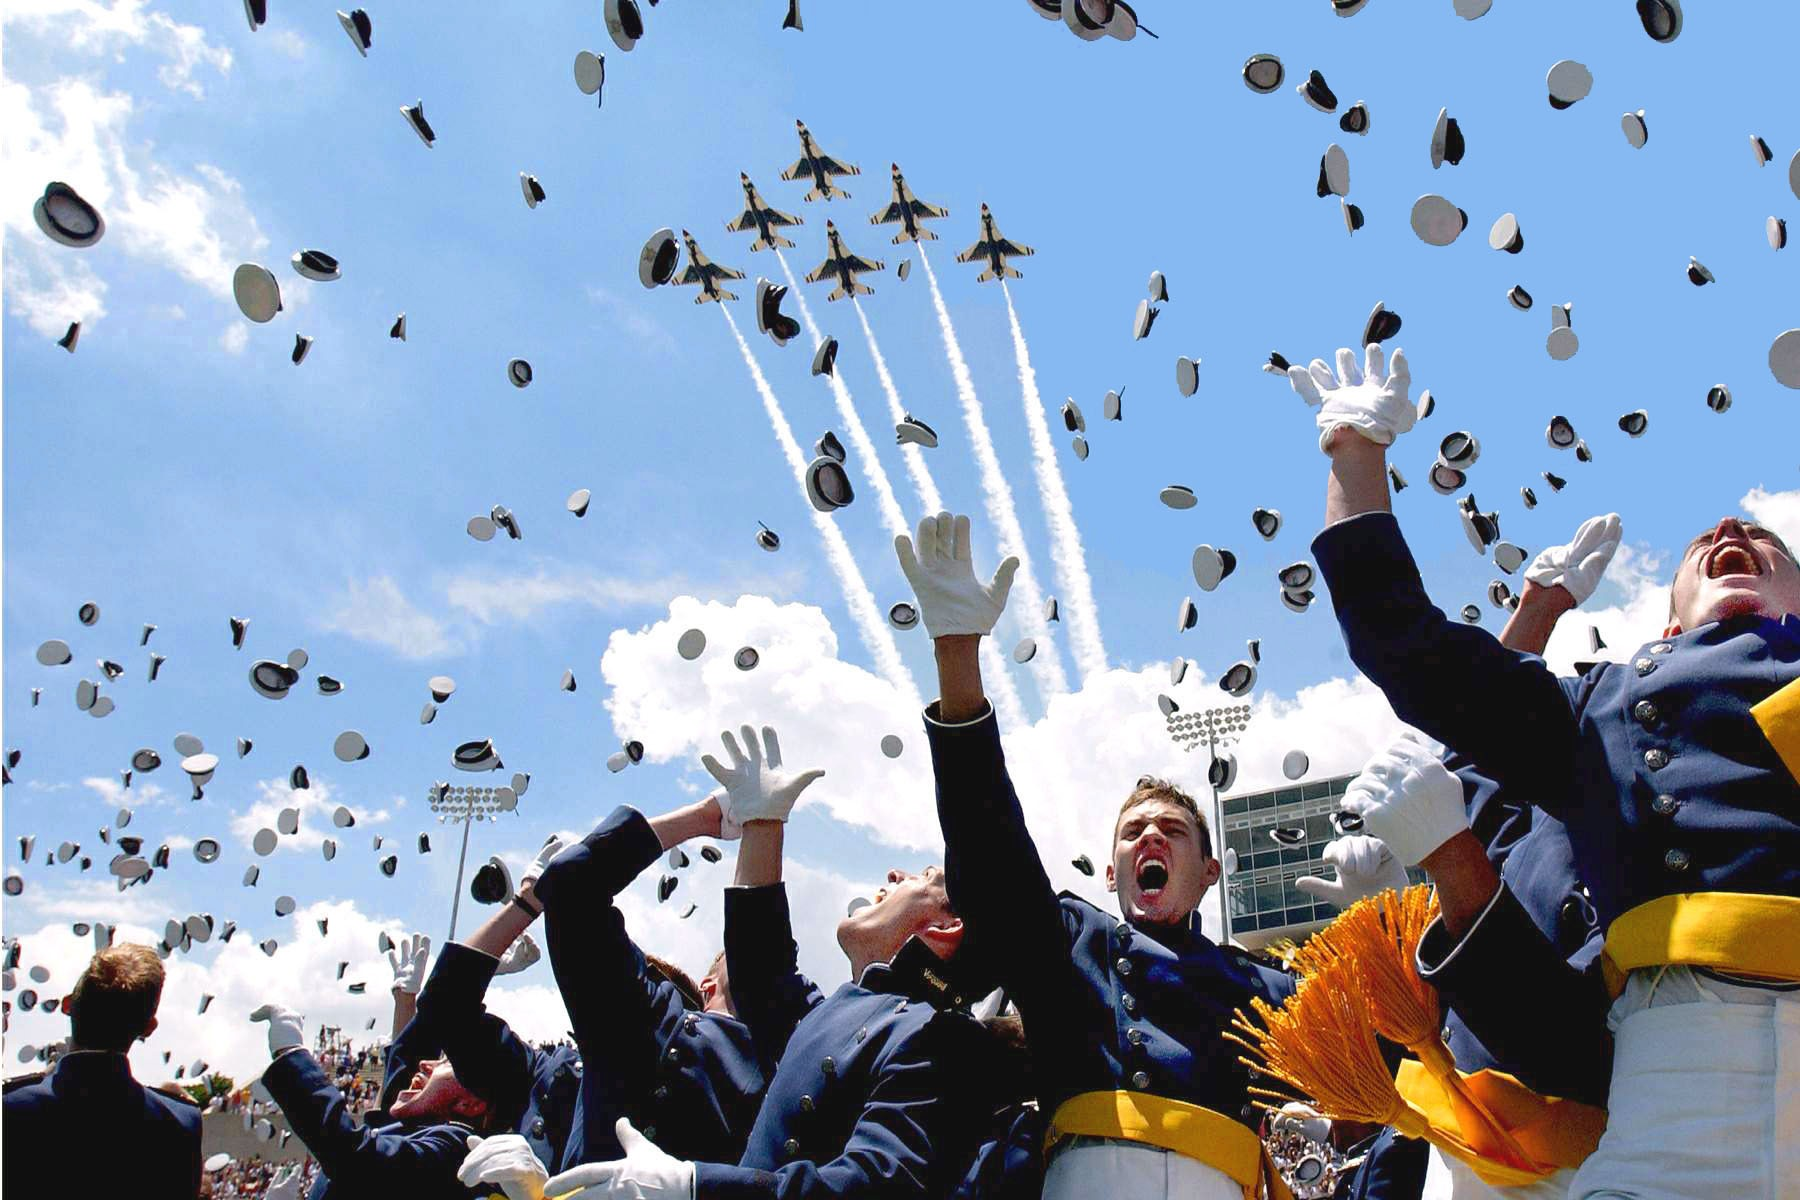 Jets and Graduation